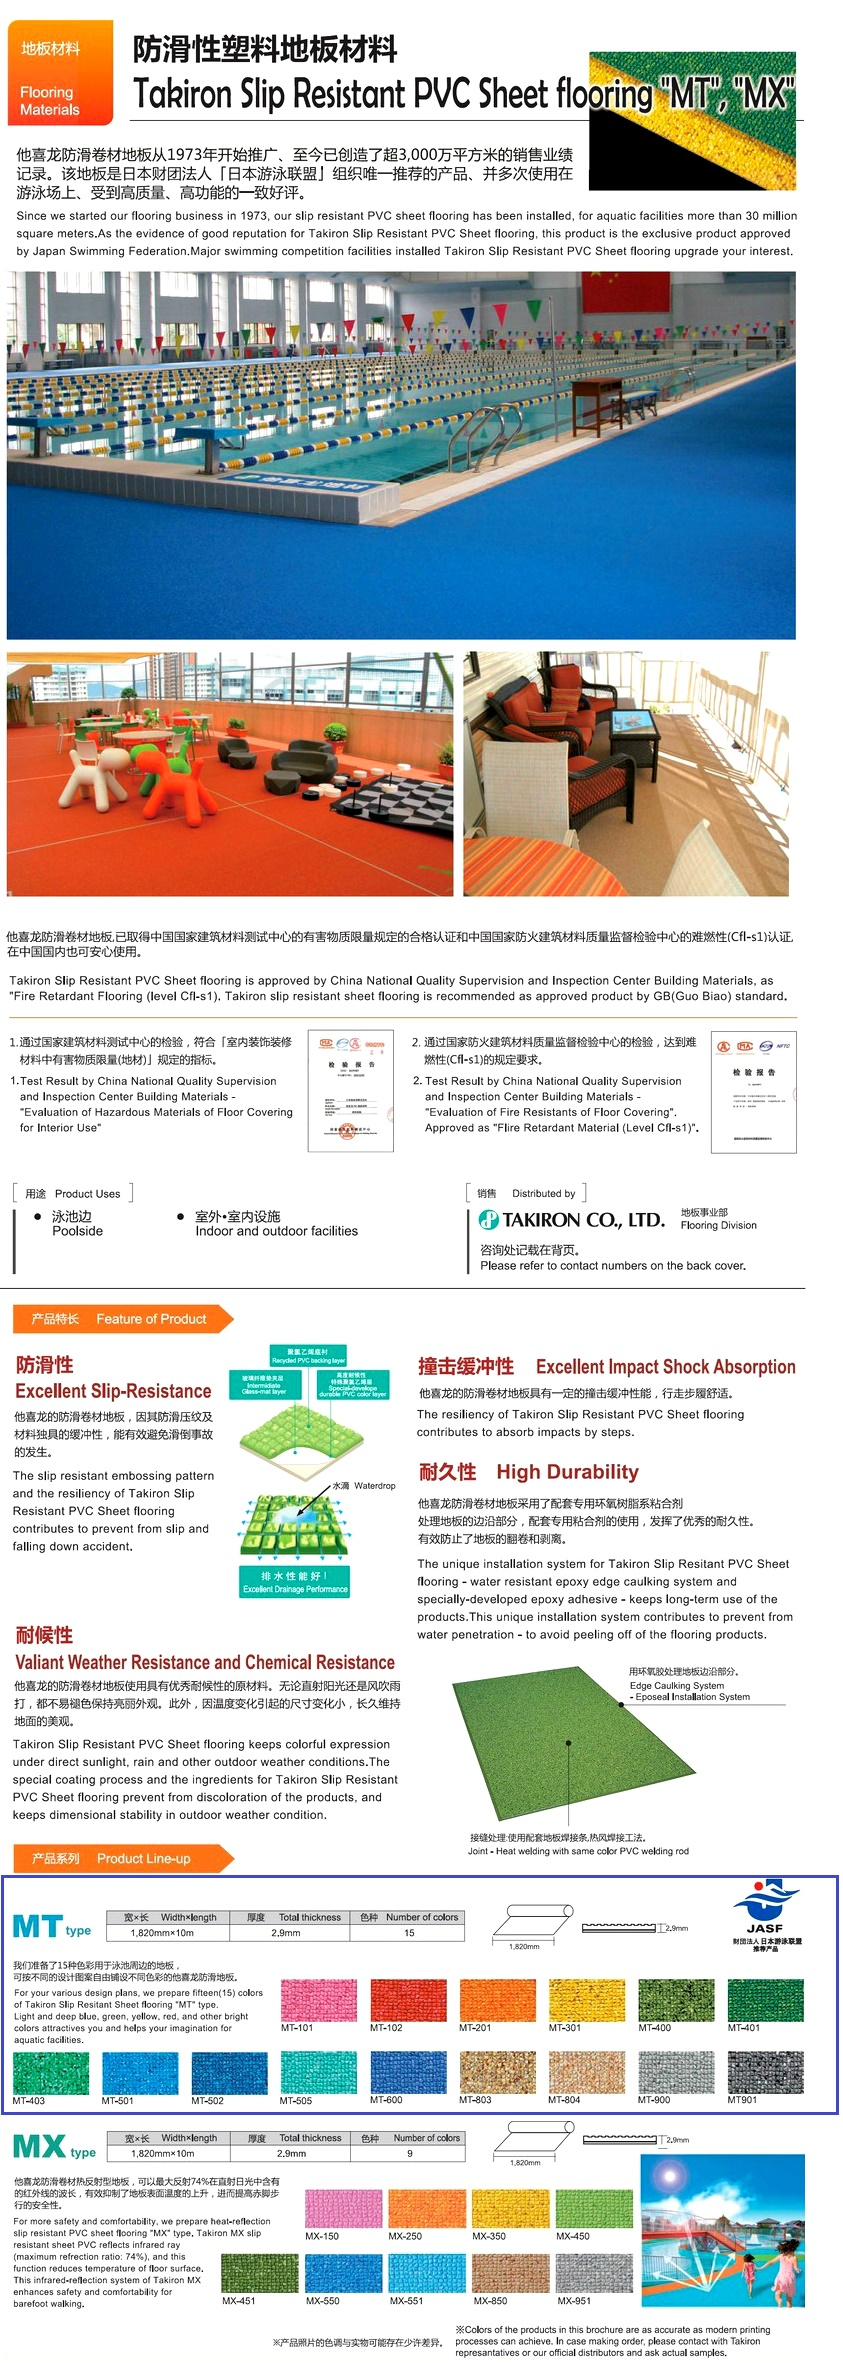 MT-101 - MT-901, MT Series Resistant Flooring Sheet, Pool Side Sheet, Sample Available